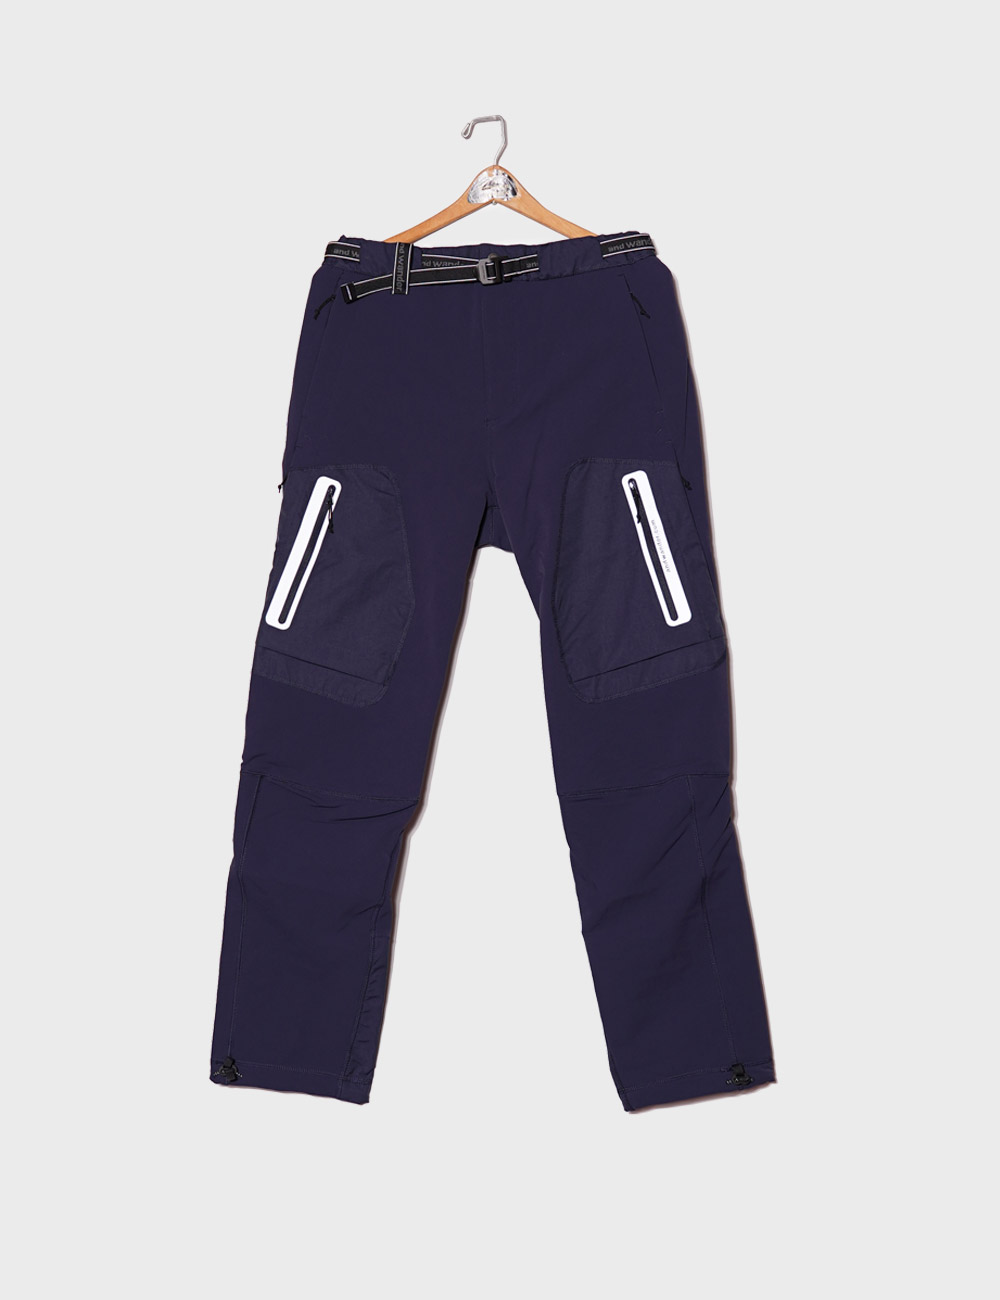 and wander : STRETCH SHELL PANTS (NAVY)